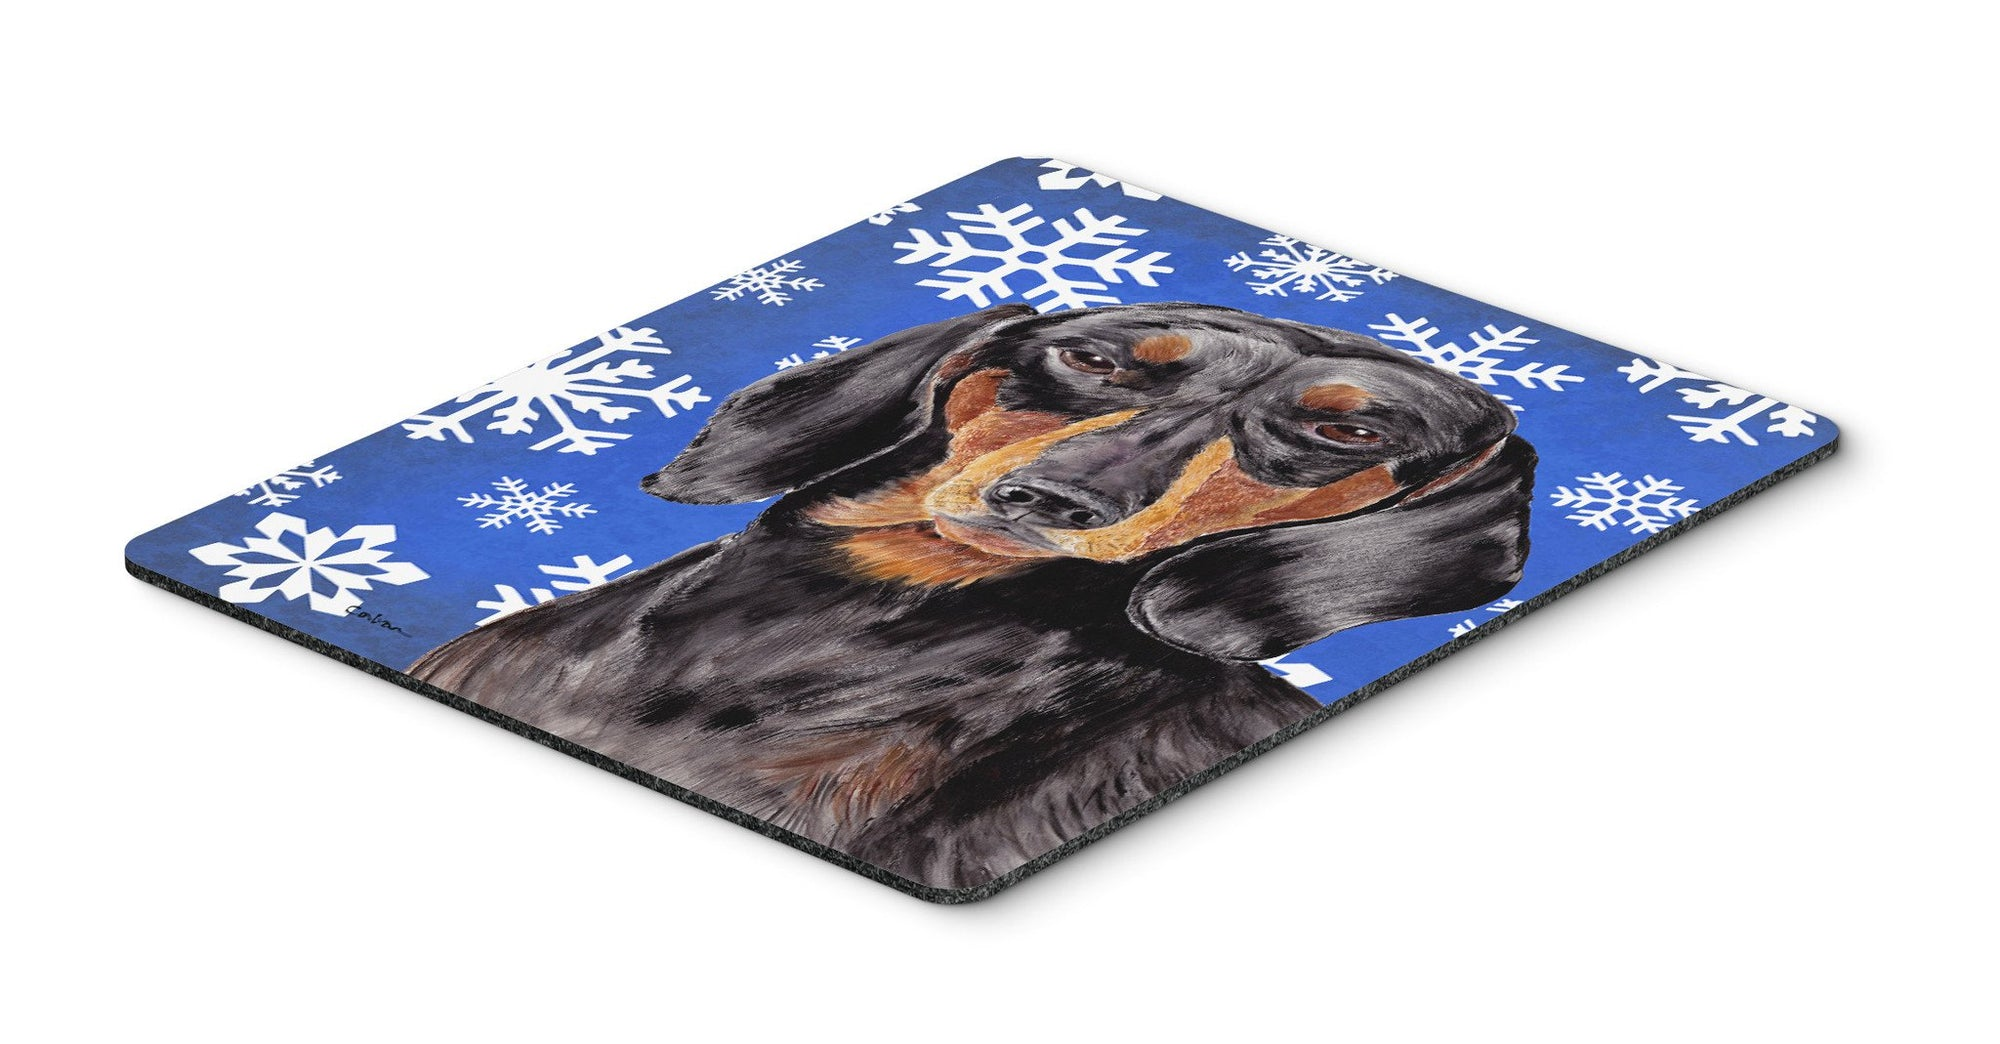 Dachshund Winter Snowflakes Holiday Mouse Pad, Hot Pad or Trivet by Caroline's Treasures